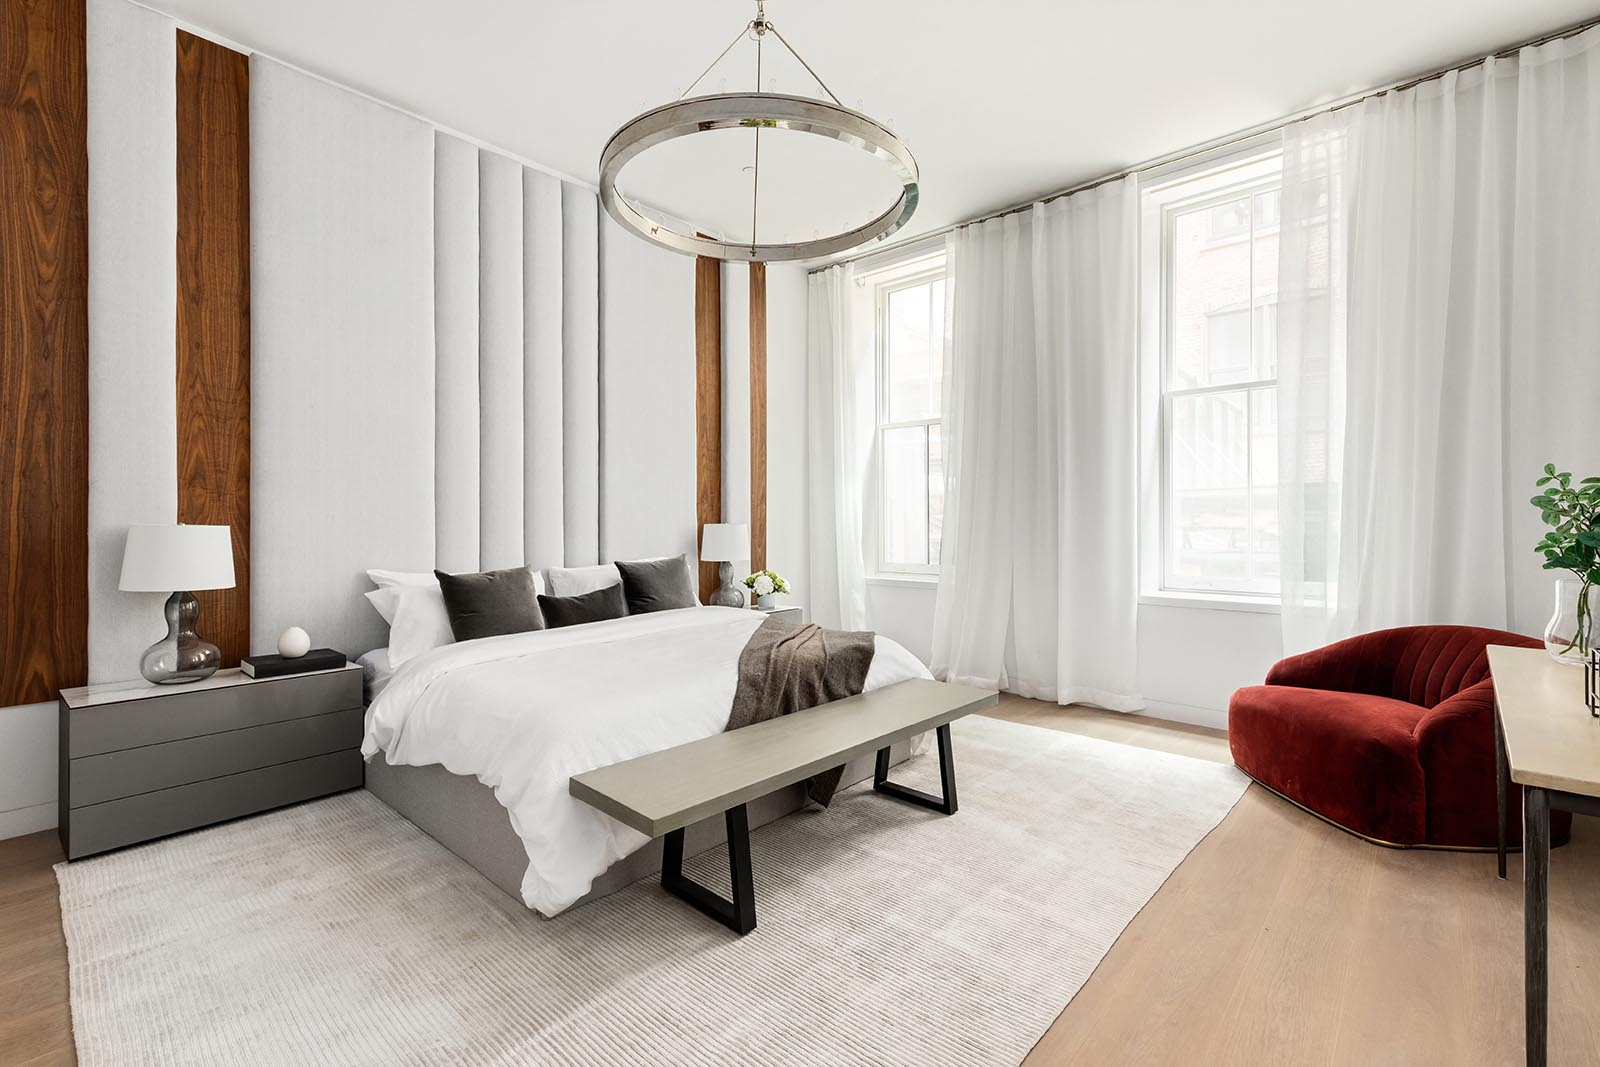 This modern master suite includes a custom wood and upholstered panel headboard that draws the eye upwards to the ceiling, making the room feel even larger than it is.